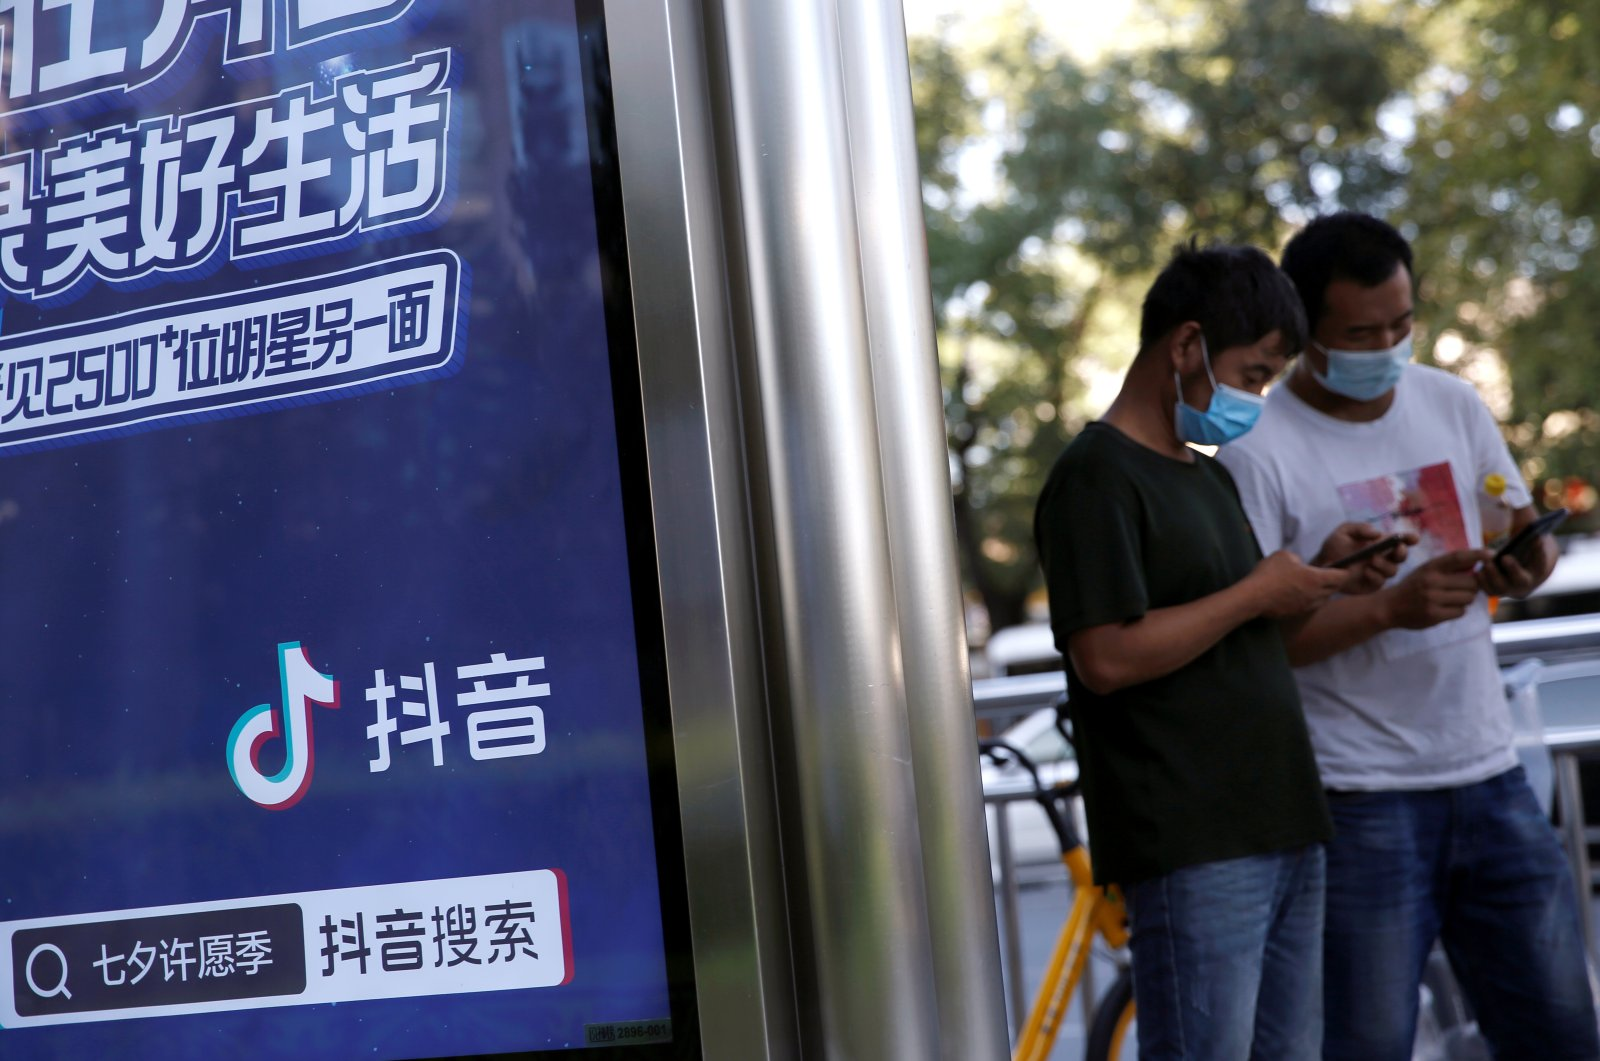 People wearing face masks during the coronavirus outbreak use smartphones next to an advertisement for TikTok at a bus stop in Beijing, China, Aug. 24, 2020. (Reuters Photo)